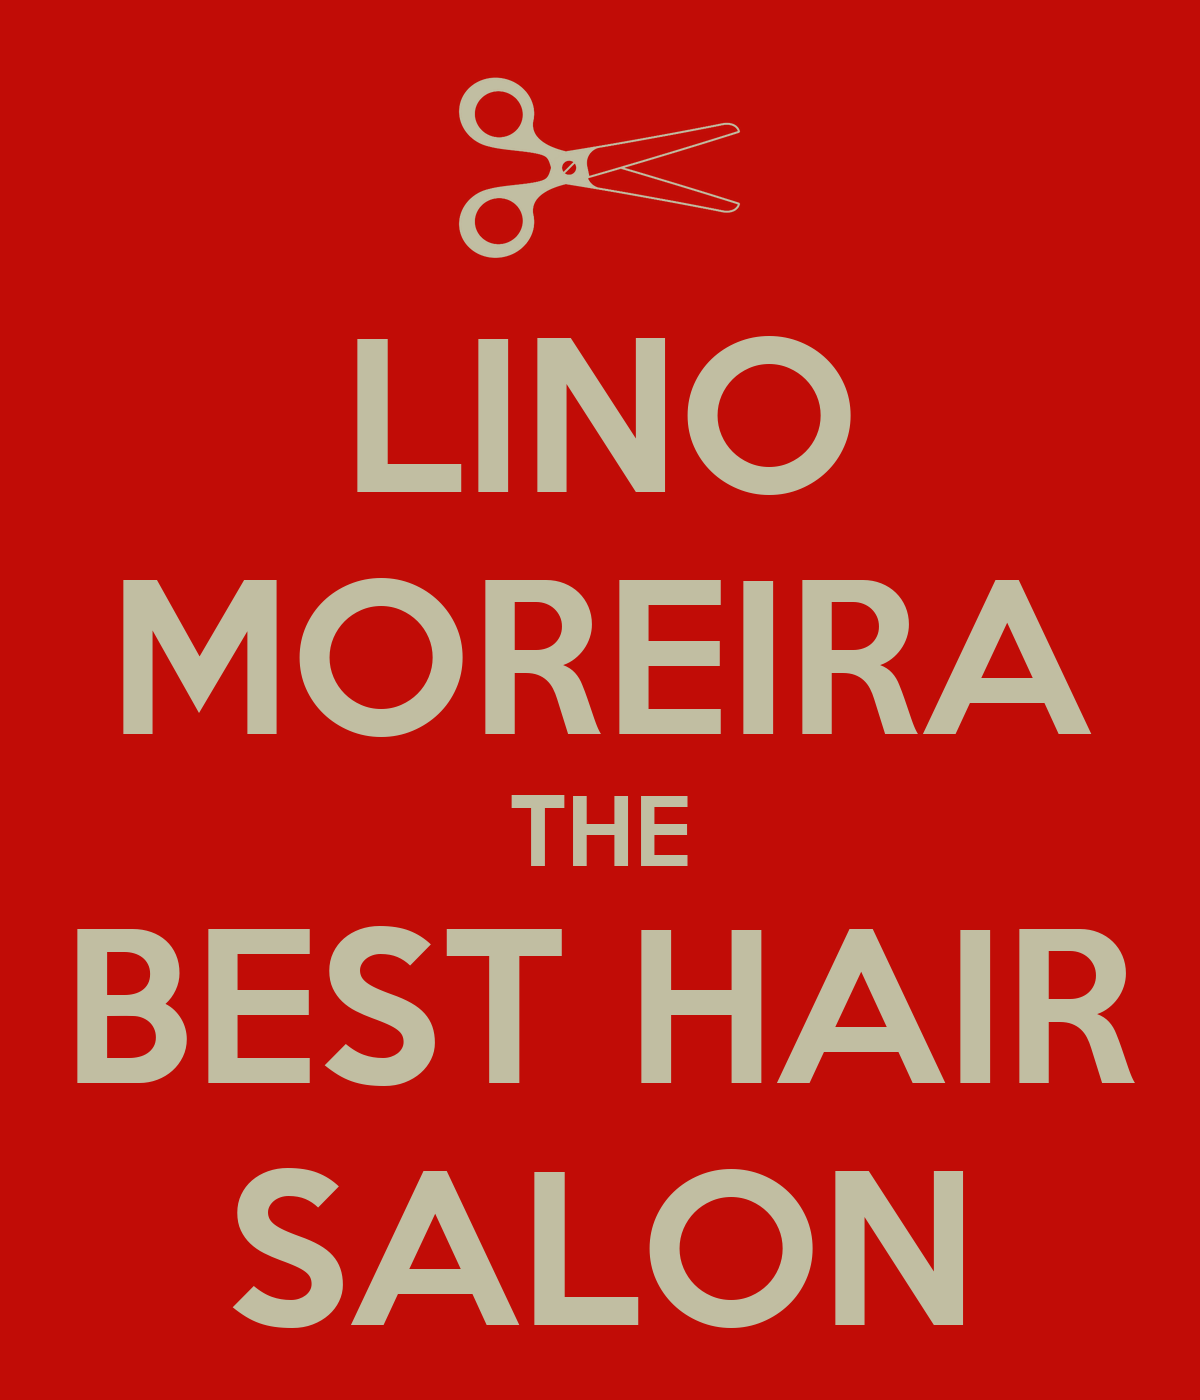 The Best Hair Stylist : LINO MOREIRA THE BEST HAIR SALON - KEEP CALM AND CARRY ON Image ...